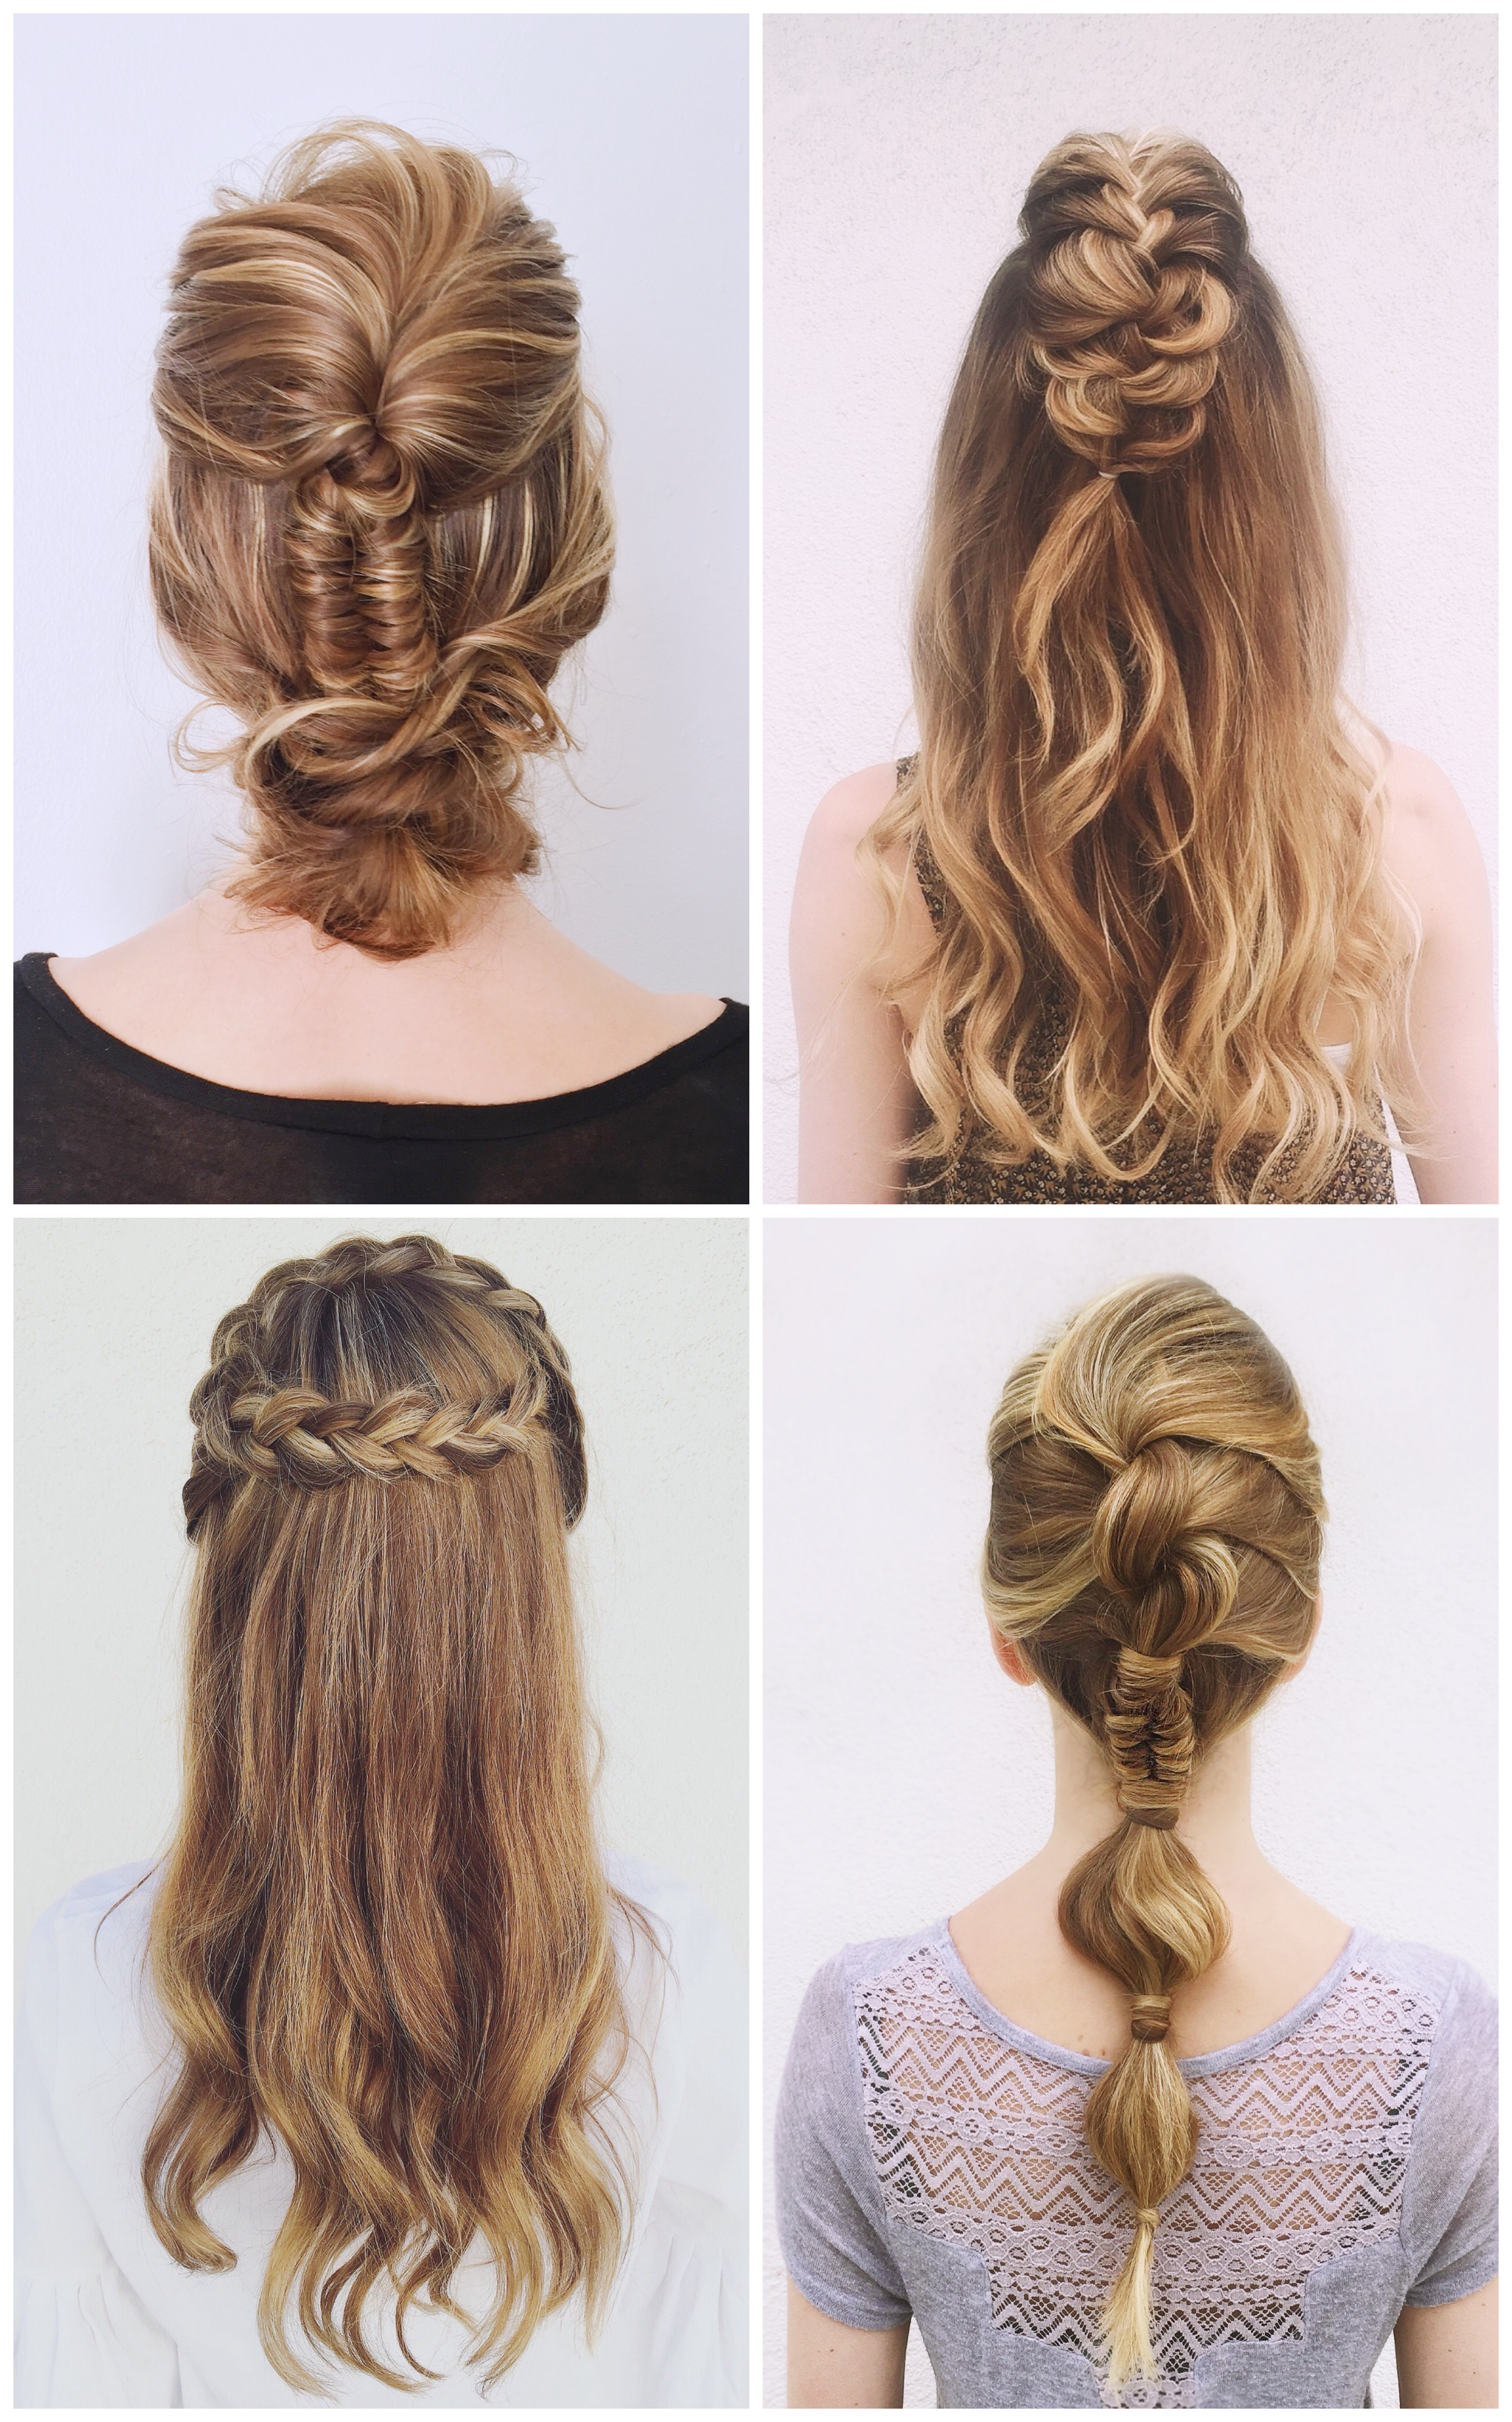 15 Cute Prom Braid Hairstyles to Try for Medium and Long Hair